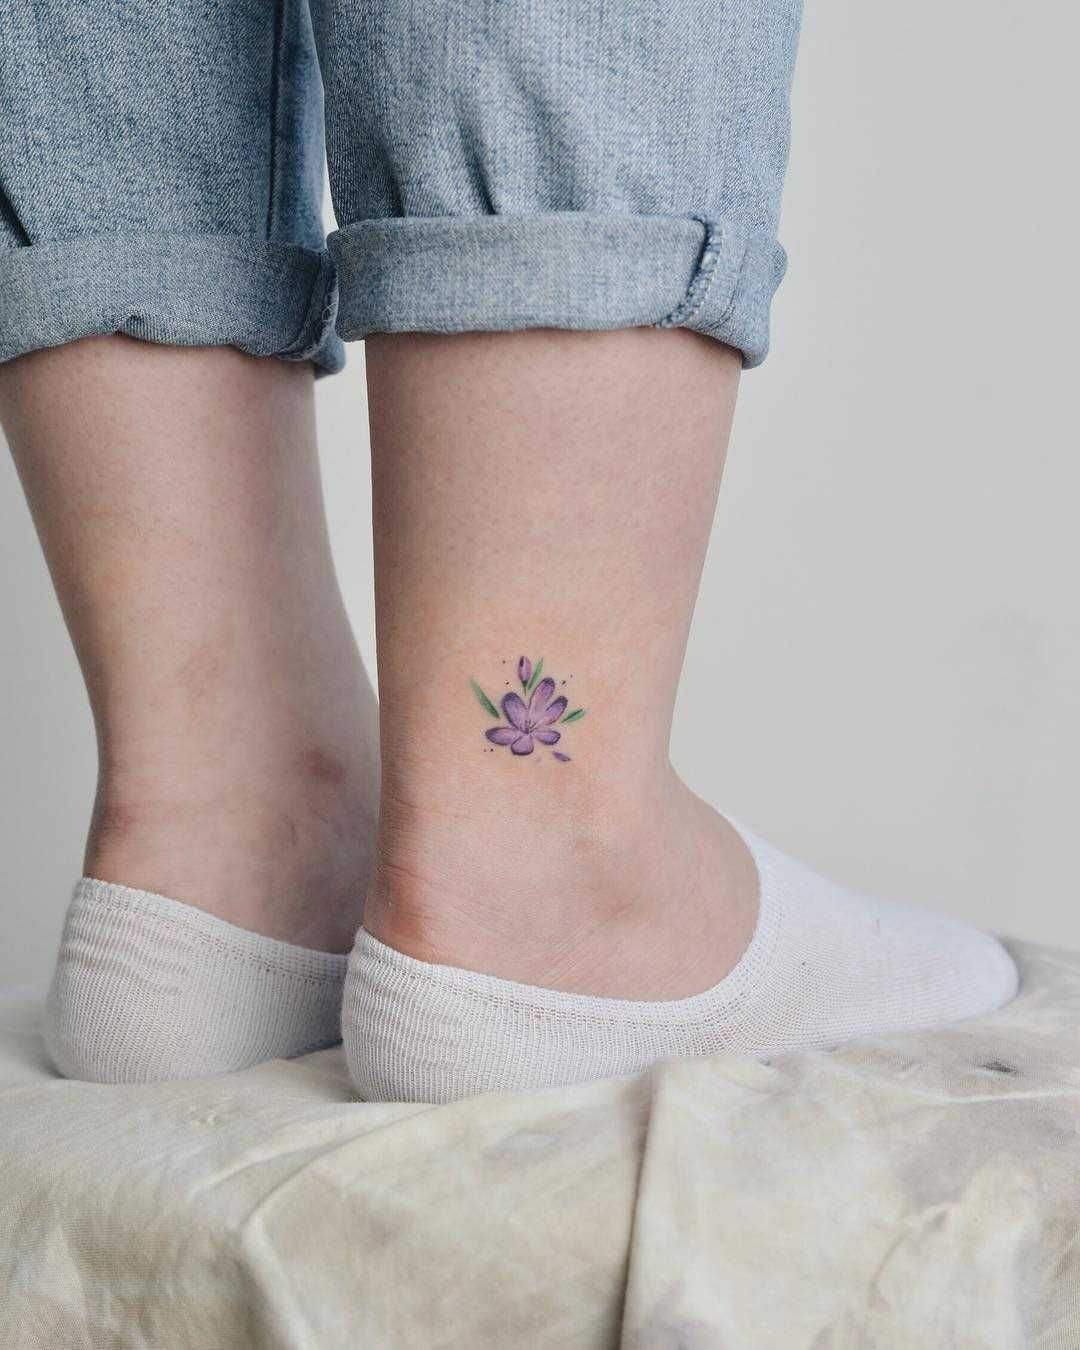 Violet flower tattoo on the ankle